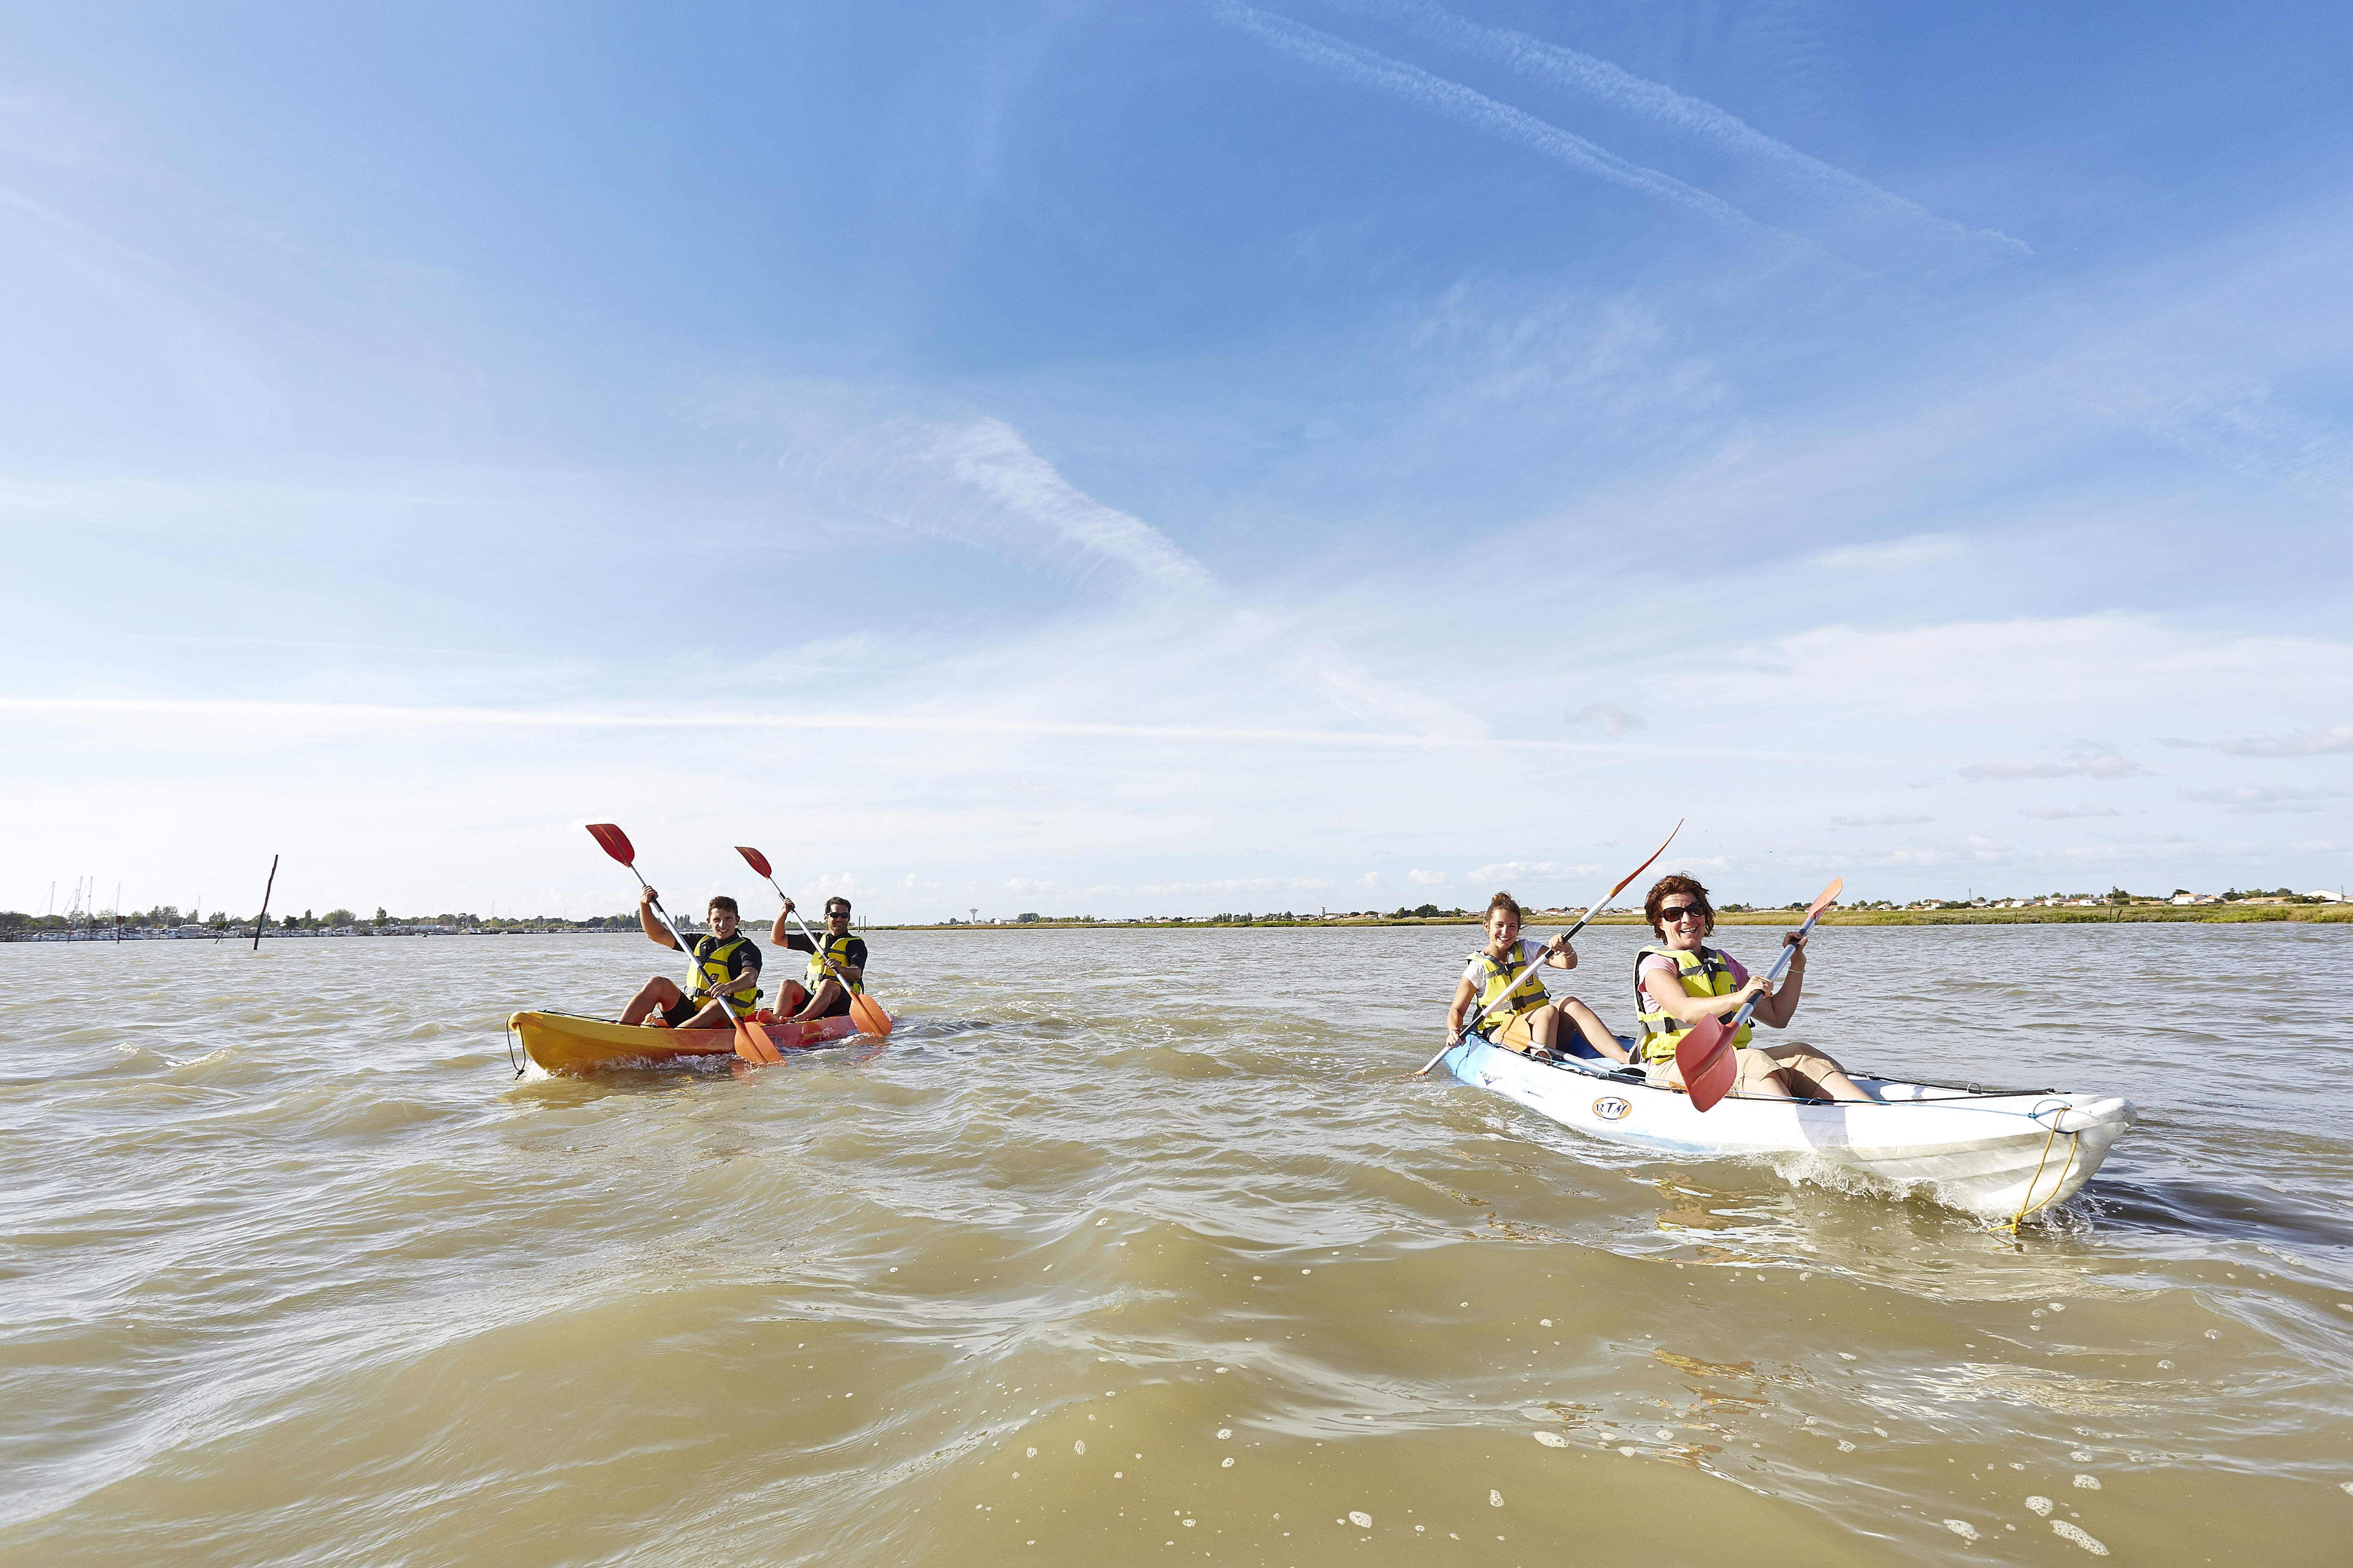 Sea kayaking hike in the bay of Aiguillon in the Marais poitevin Regional Nature Park